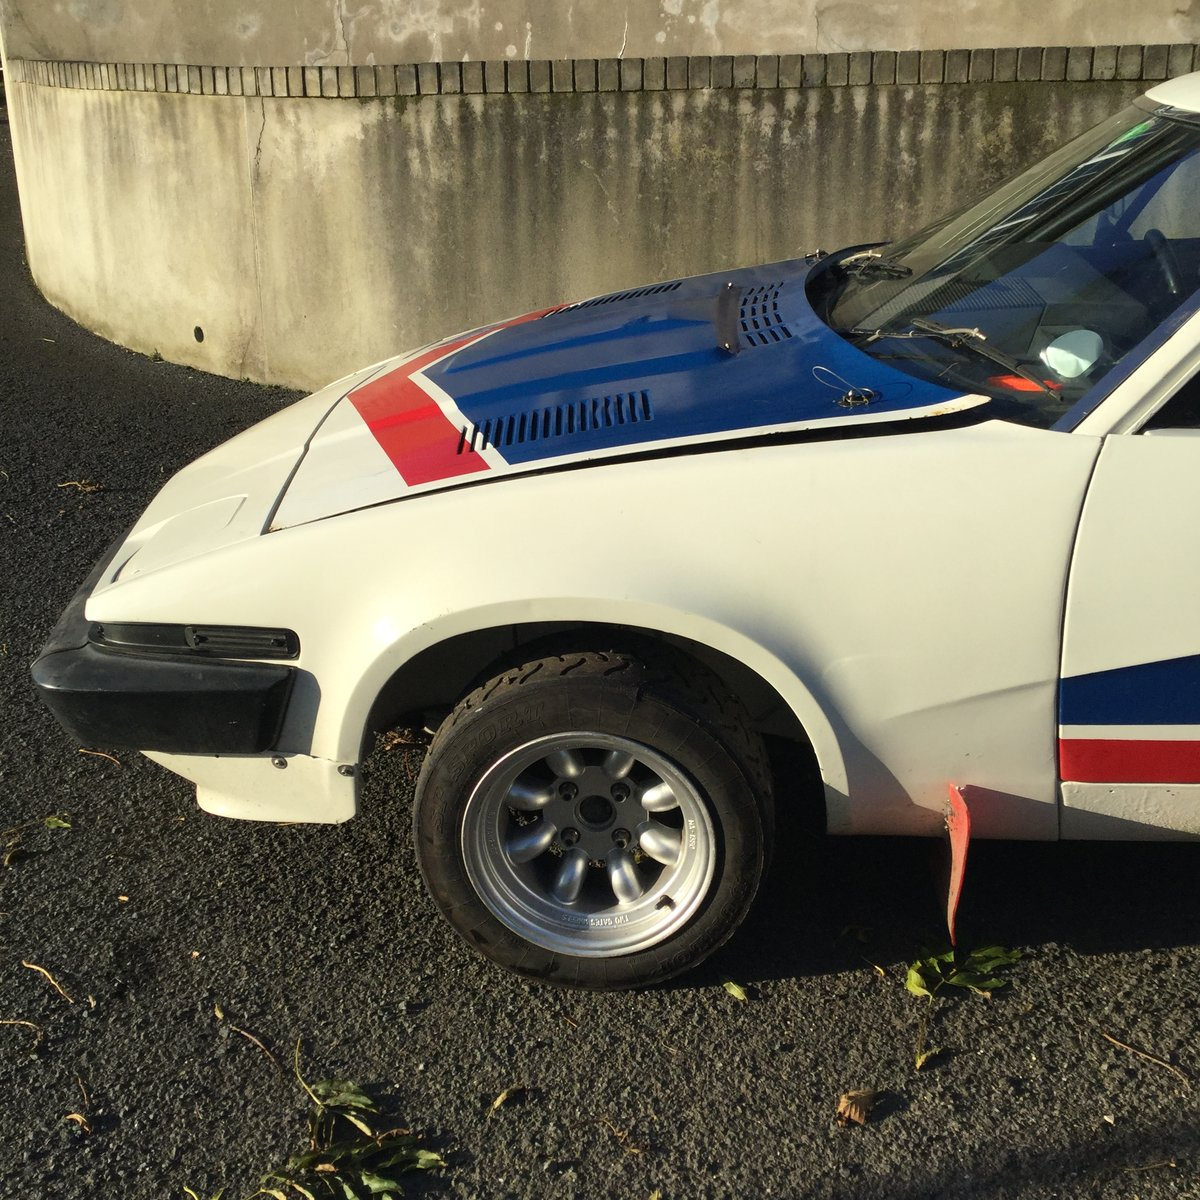 1979 Tr7 v8 rally car For Sale (picture 3 of 6)